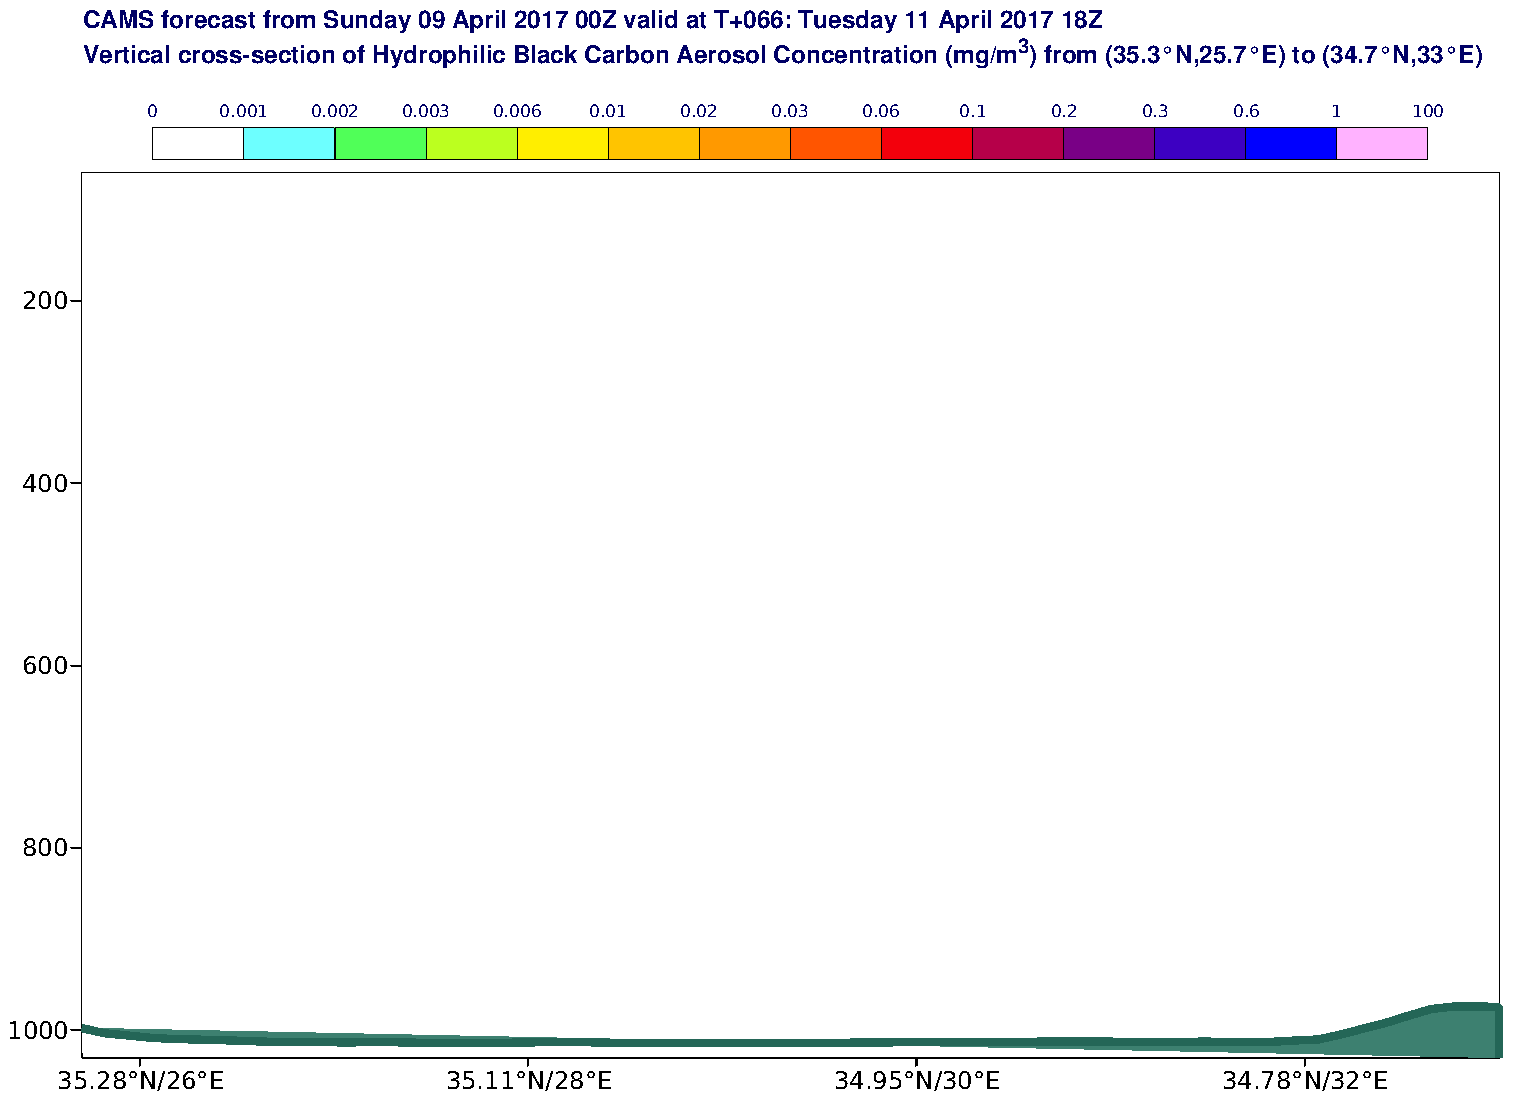 Vertical cross-section of Hydrophilic Black Carbon Aerosol Concentration (mg/m3) valid at T66 - 2017-04-11 18:00